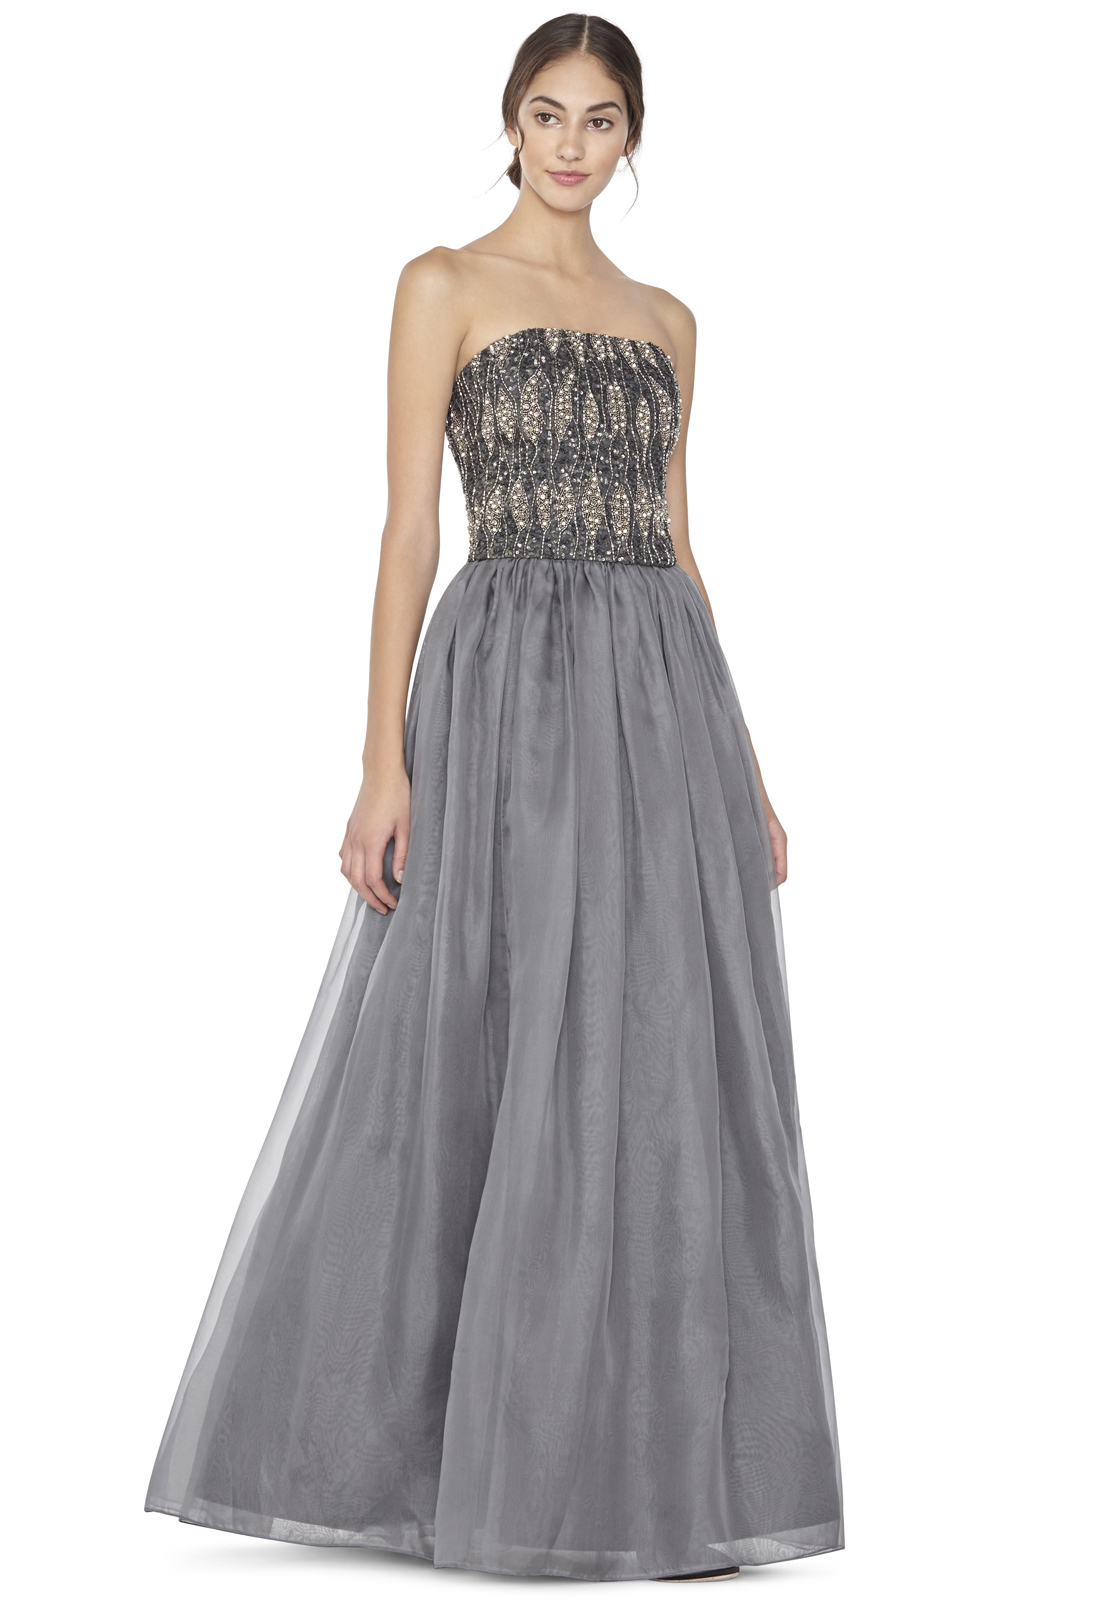 Alice   olivia Abella Long Ball Gown Skirt in Gray | Lyst